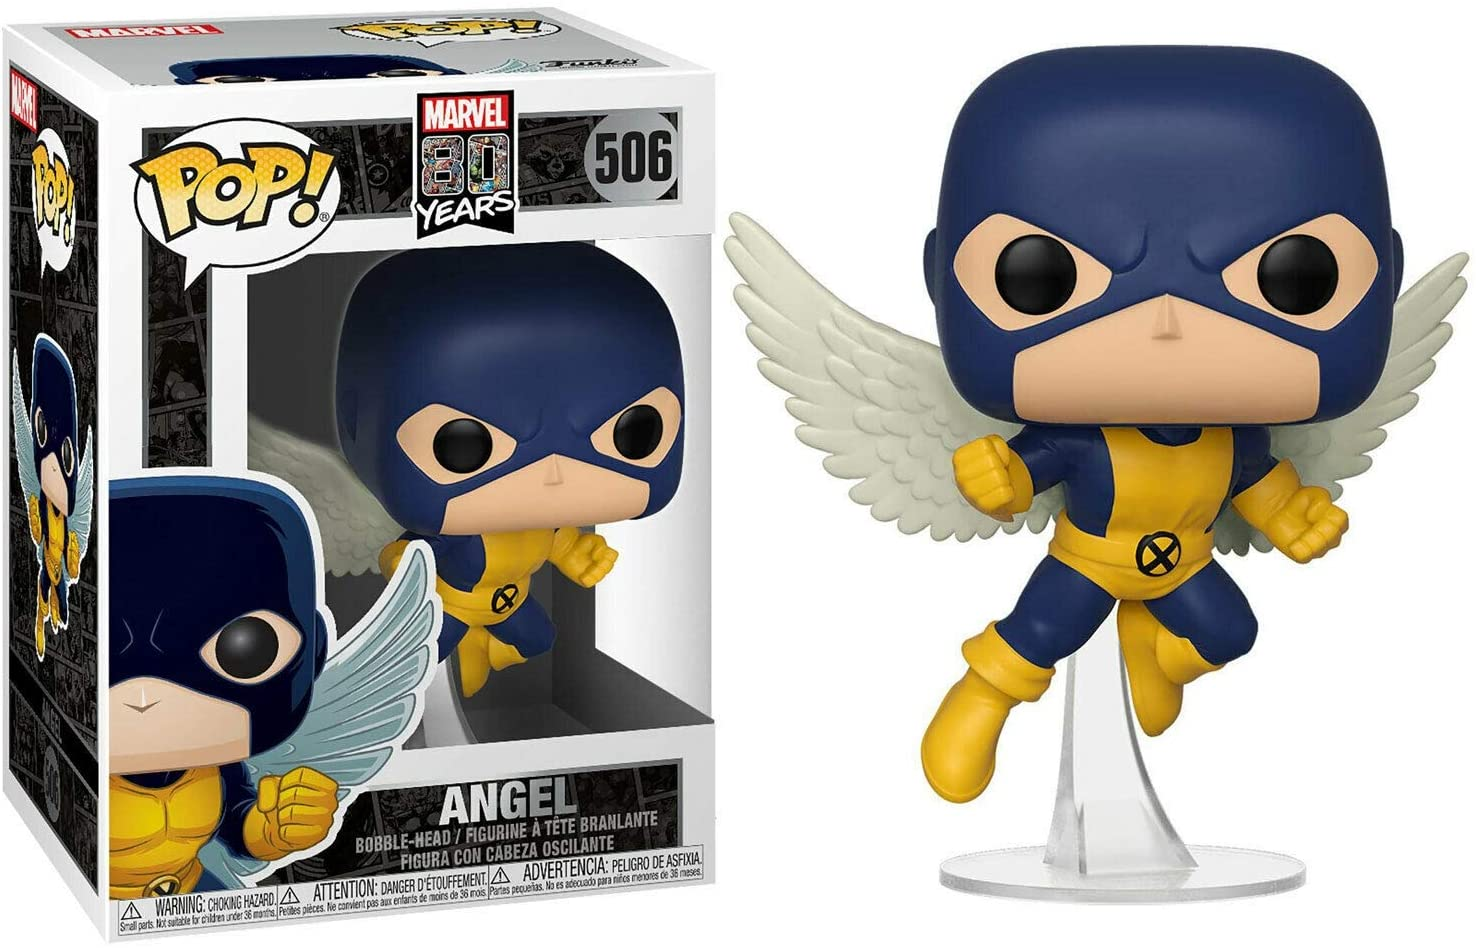 FUNKO POP! MARVEL EDICAO ESPECIAL 80 ANOS - ANGEL - FIRST APPEARANCE #506